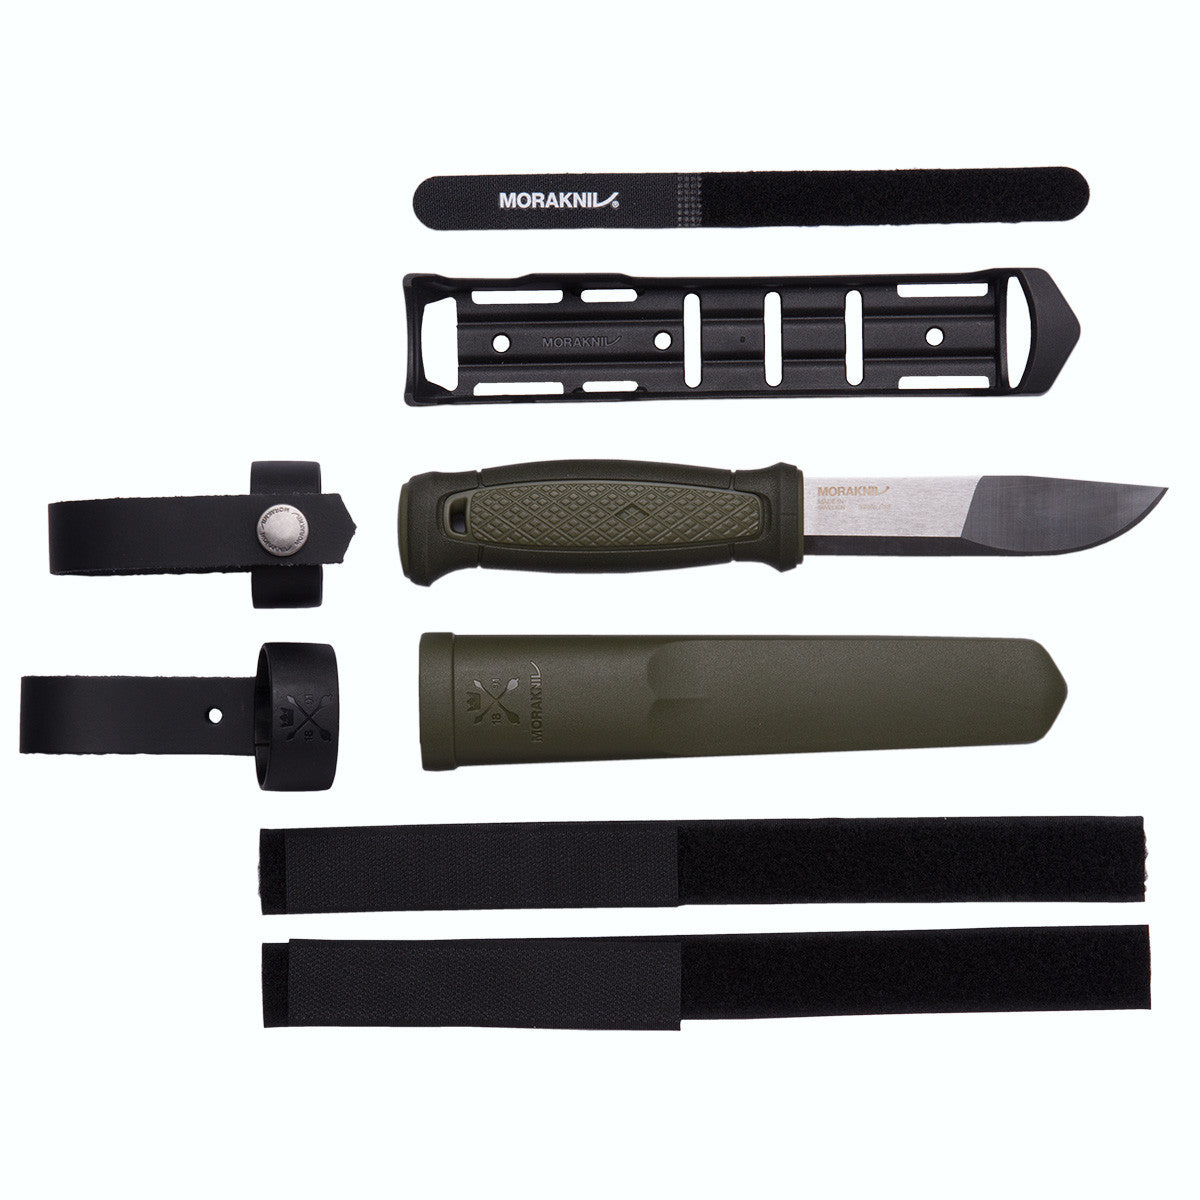 Morakniv Kamnsbol with Clam Sheath and Multi Mount Accessories - BNR Industrial